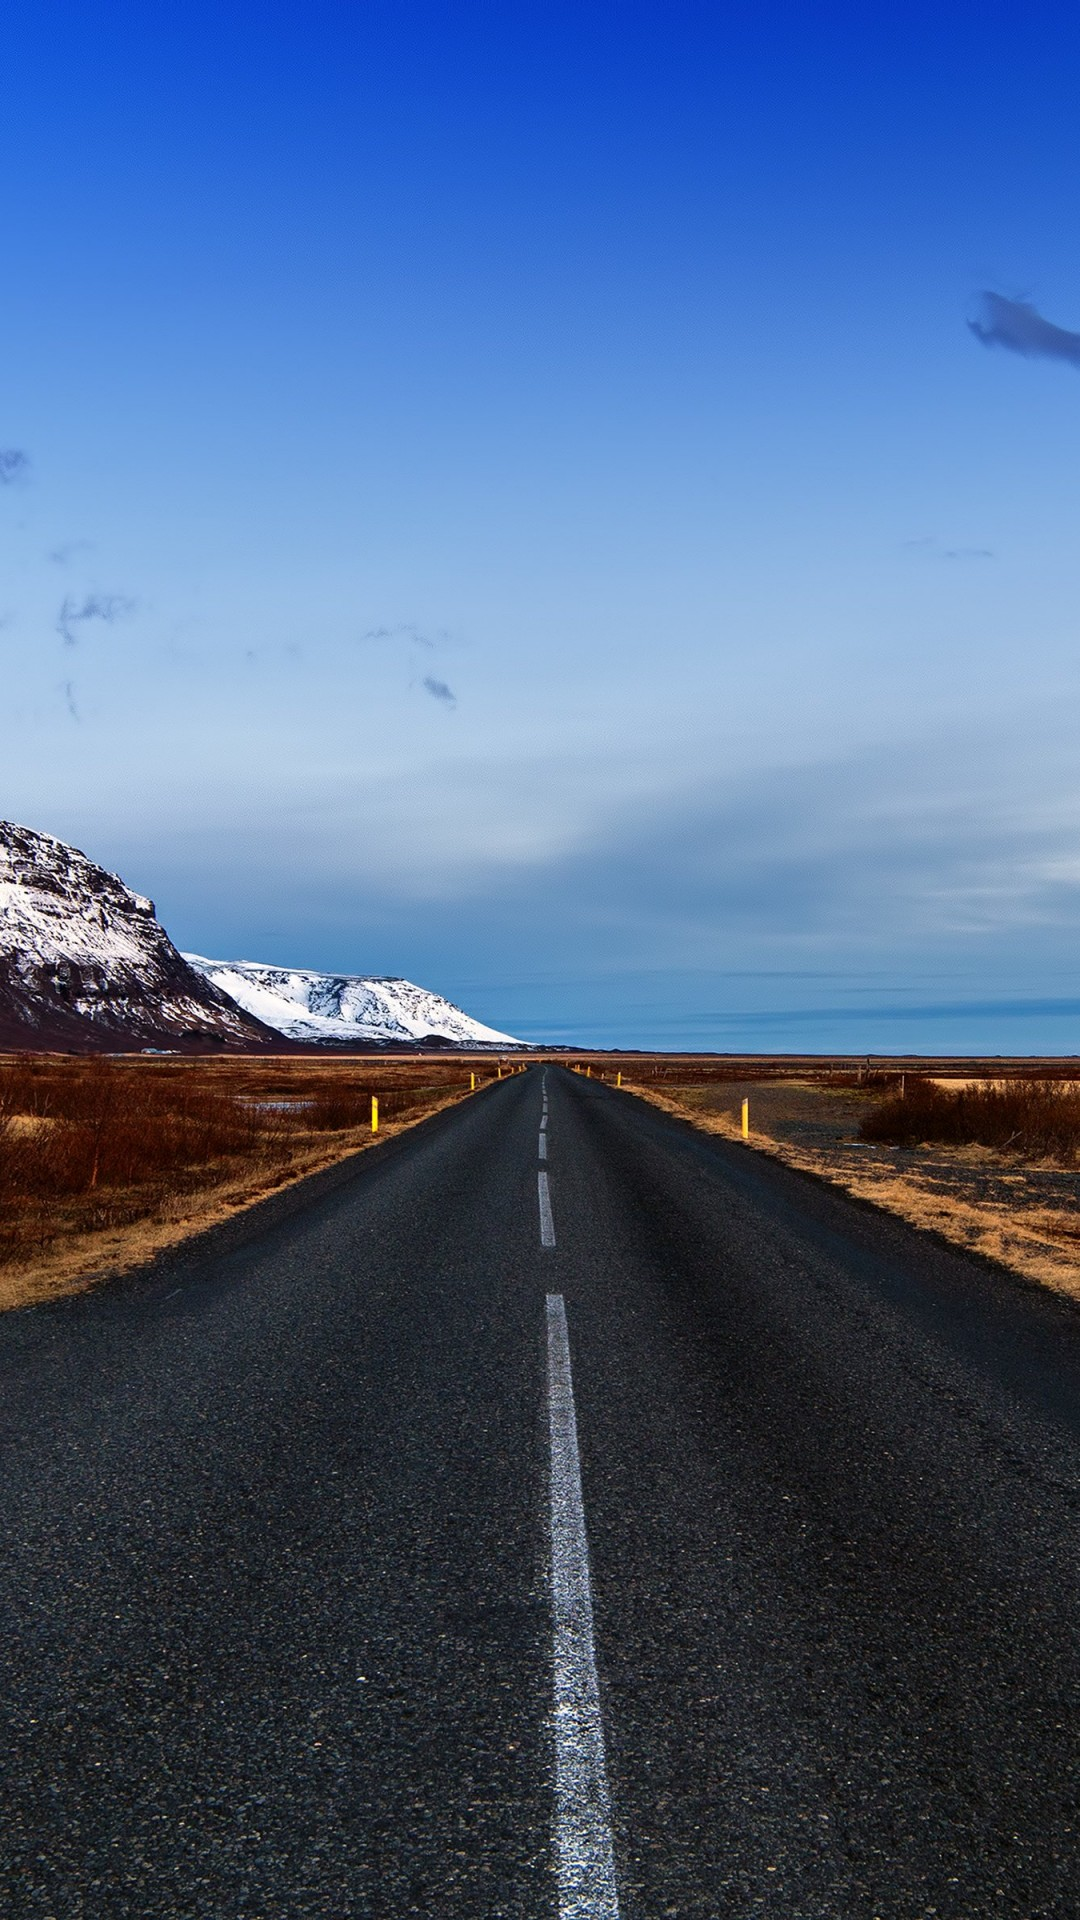 Icelandic Road, Skaftafell, Iceland Wallpaper for SAMSUNG Galaxy S5